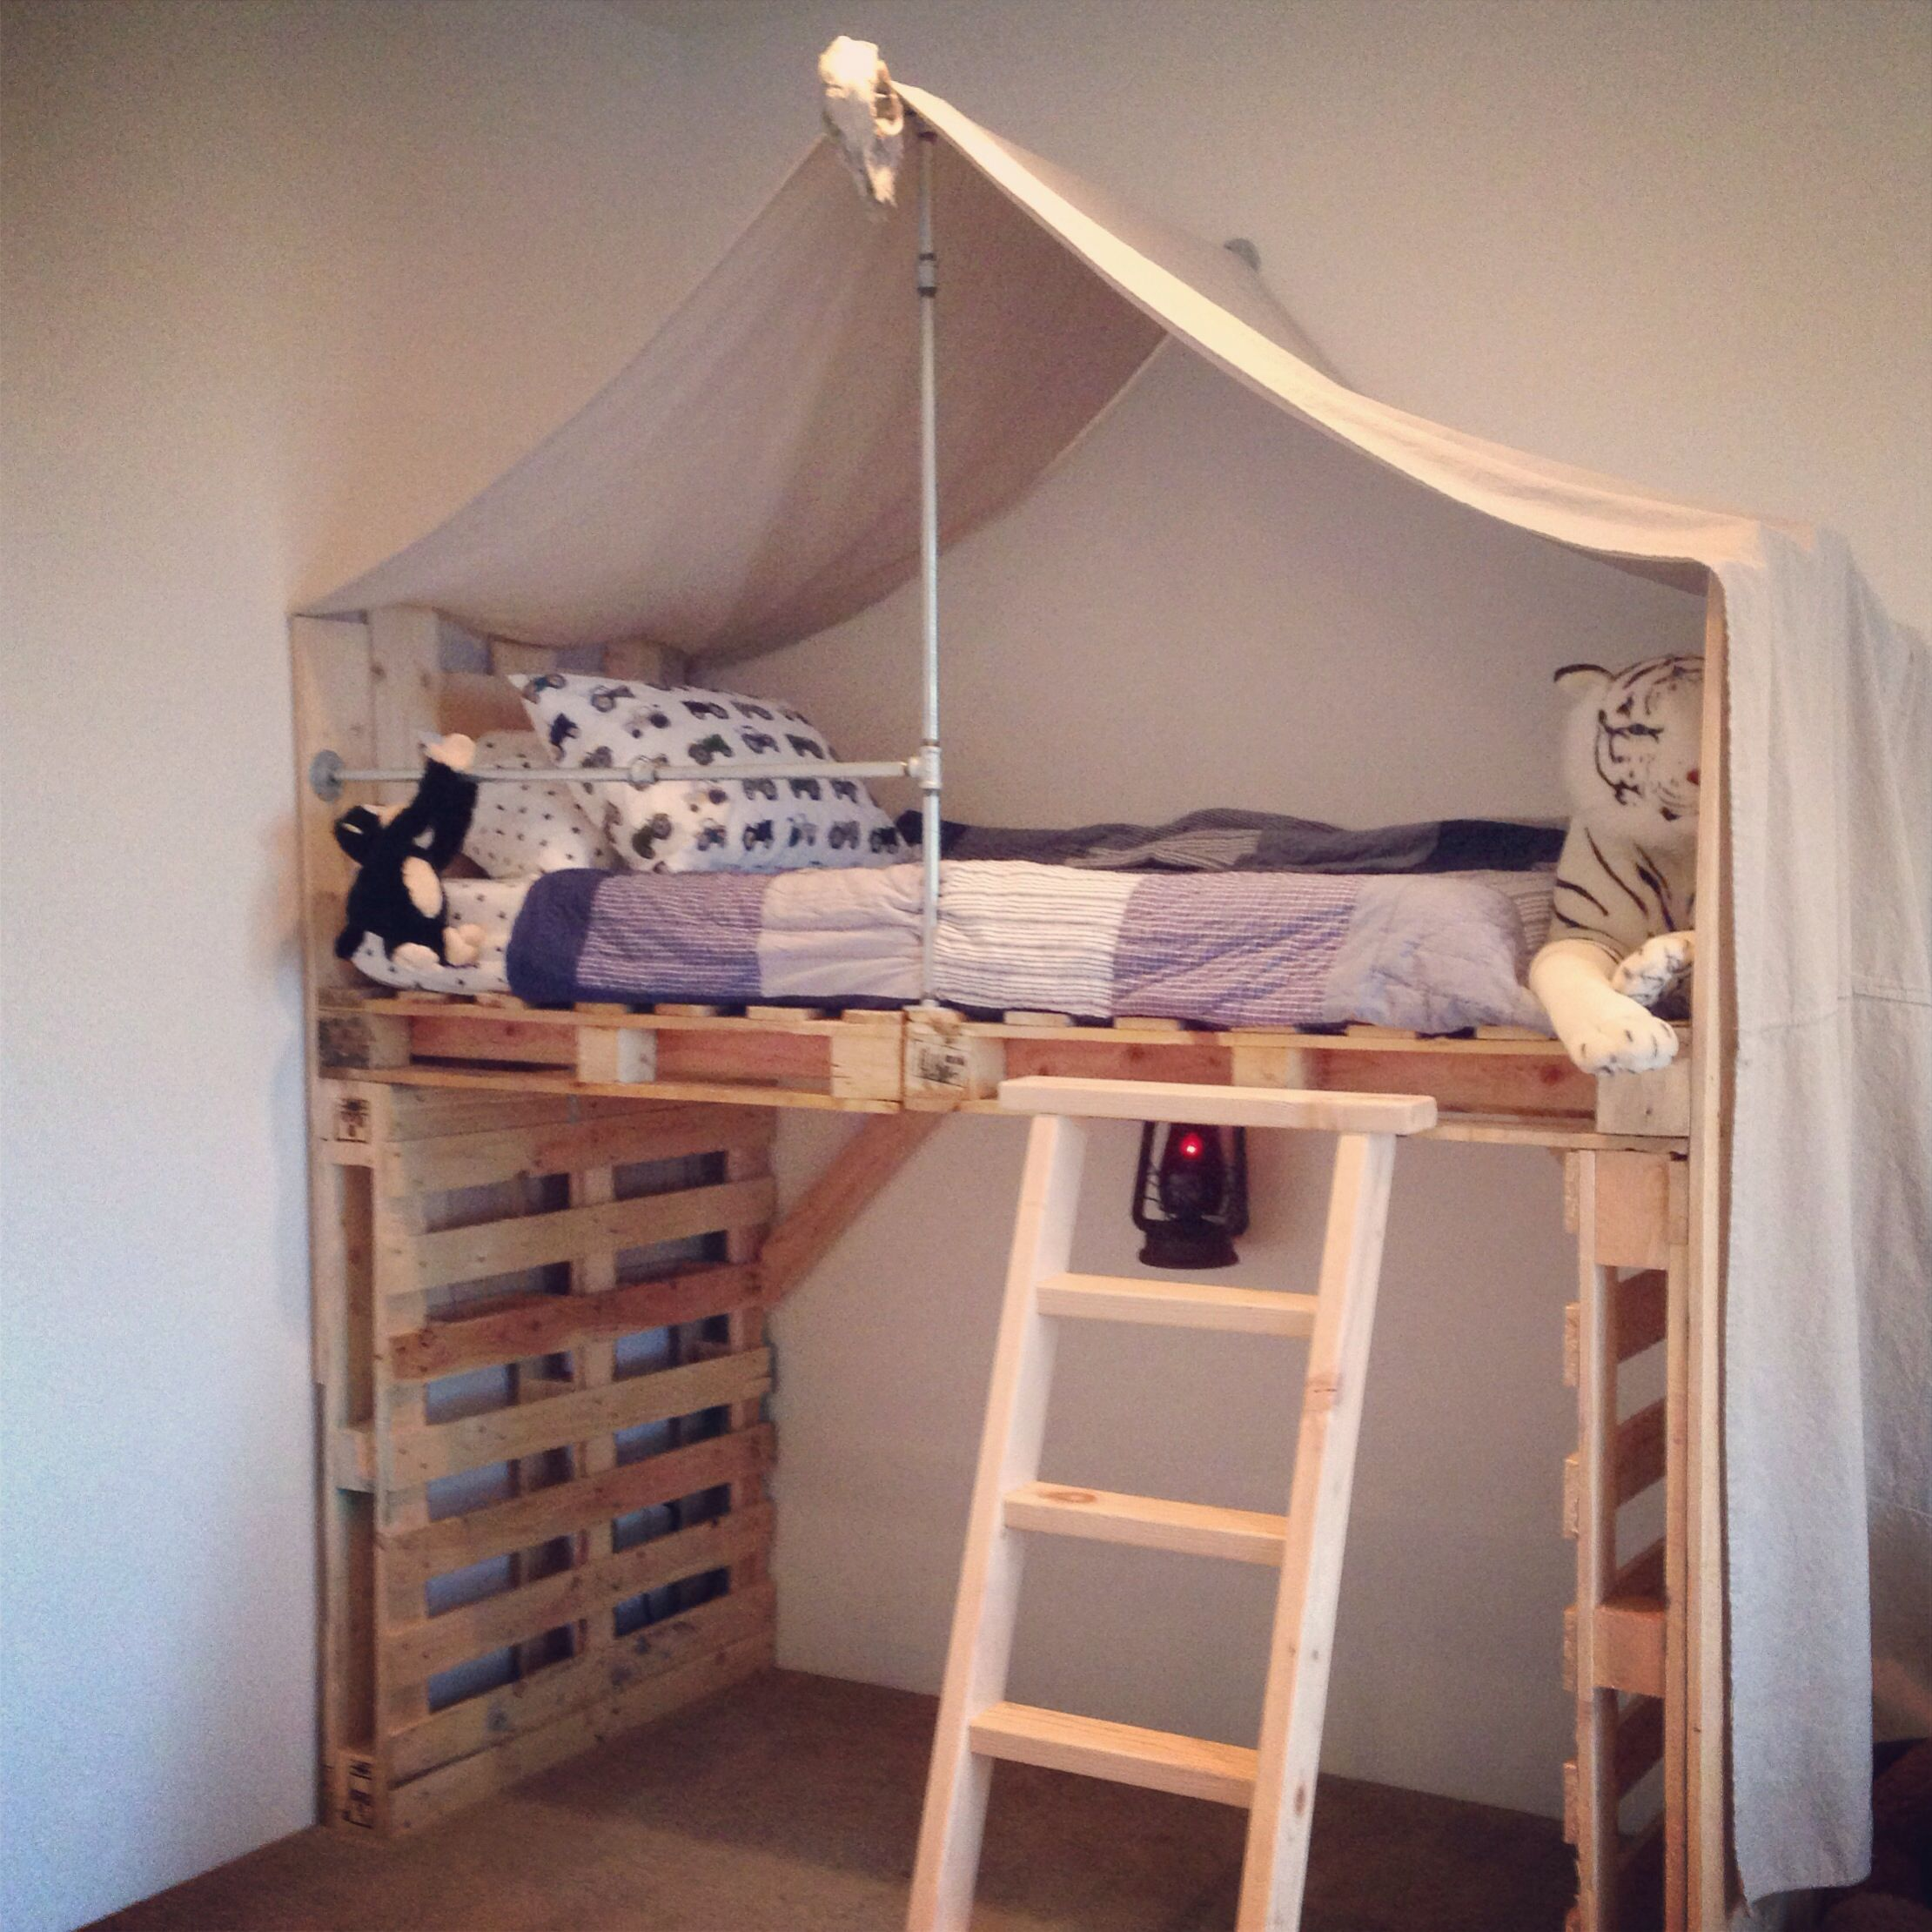 Diy recycled pallets loft bed great idea for kids bedrooms cute